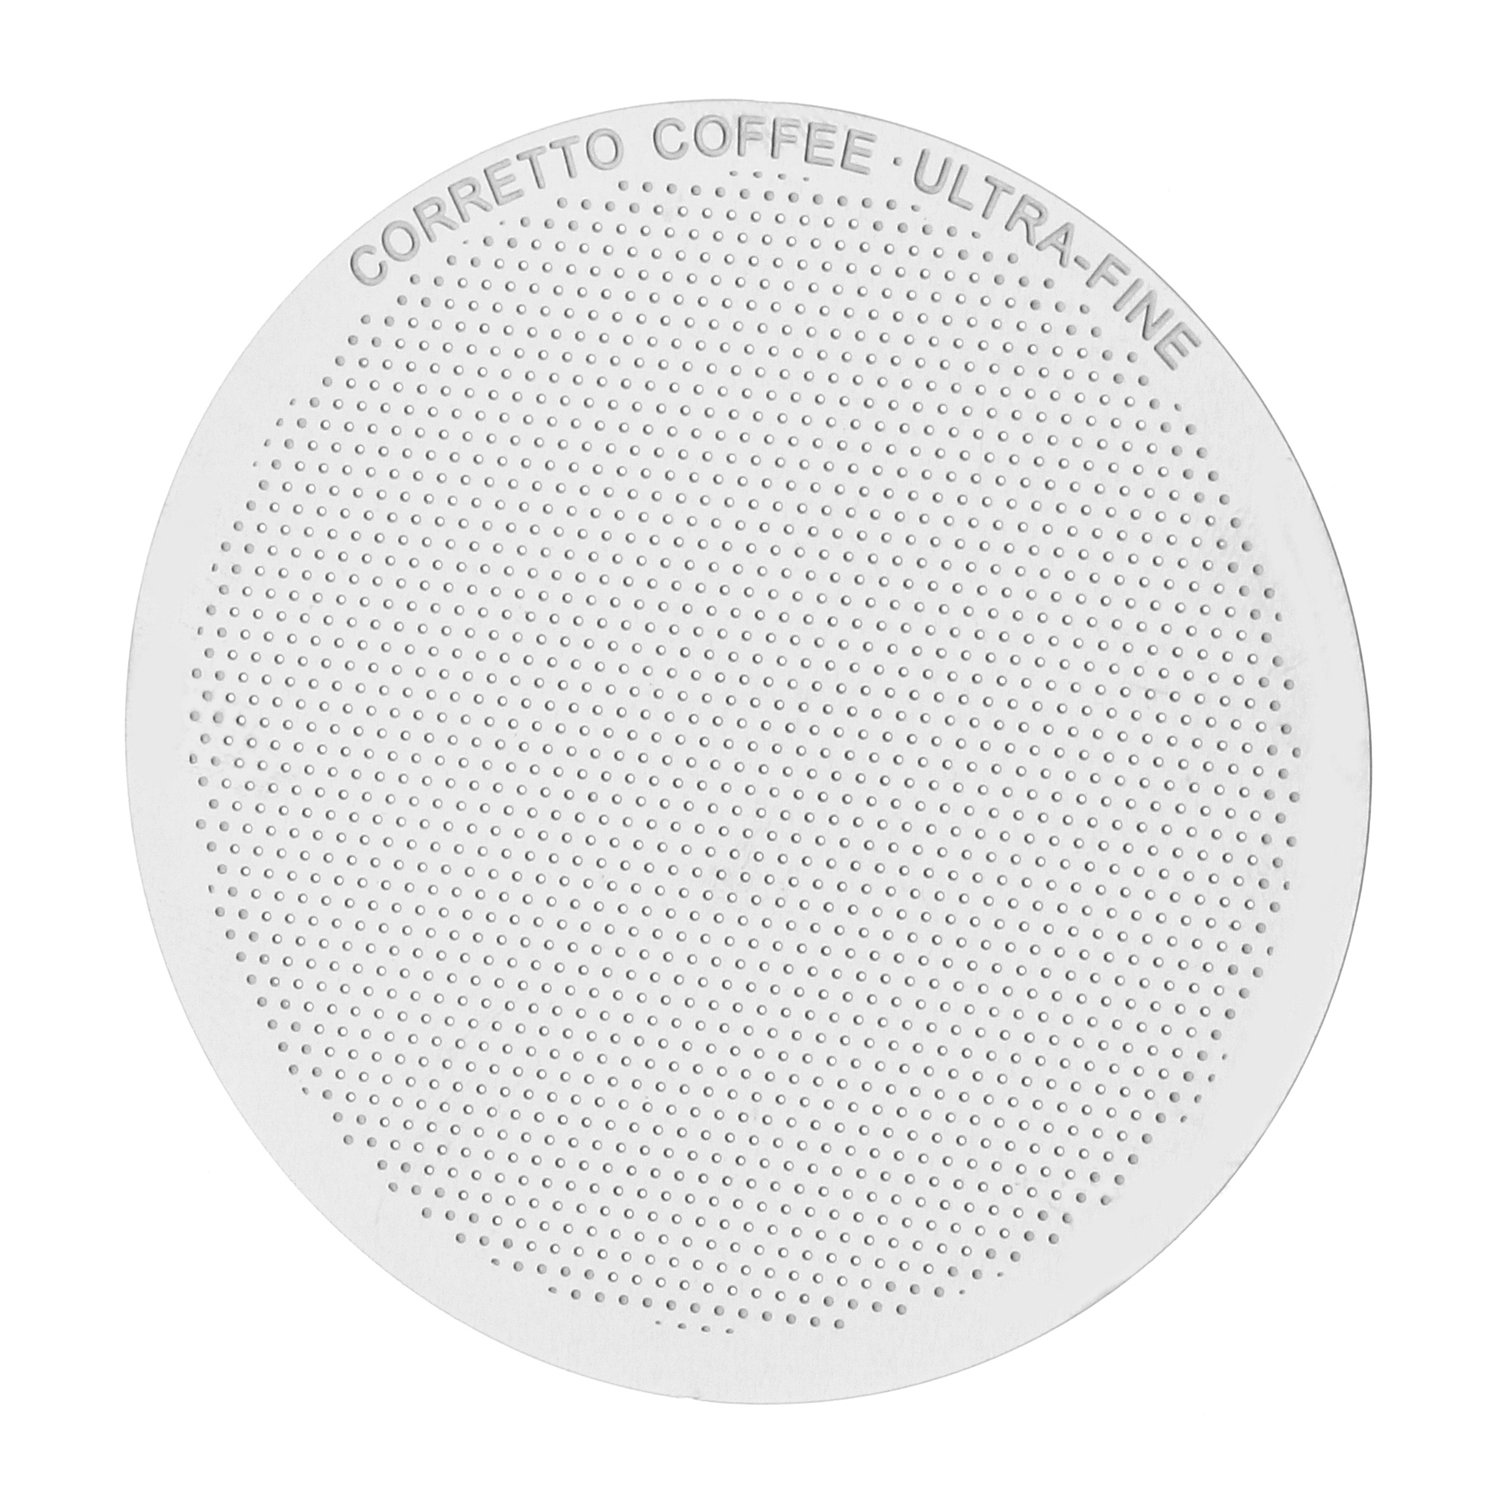 1 FINE Pro Reusable Filter for use in AeroPress Coffee Maker, Premium Stainless Steel, Brewing Guide Included & 100% Satisfaction Guarantee Corretto APFILTERFINE